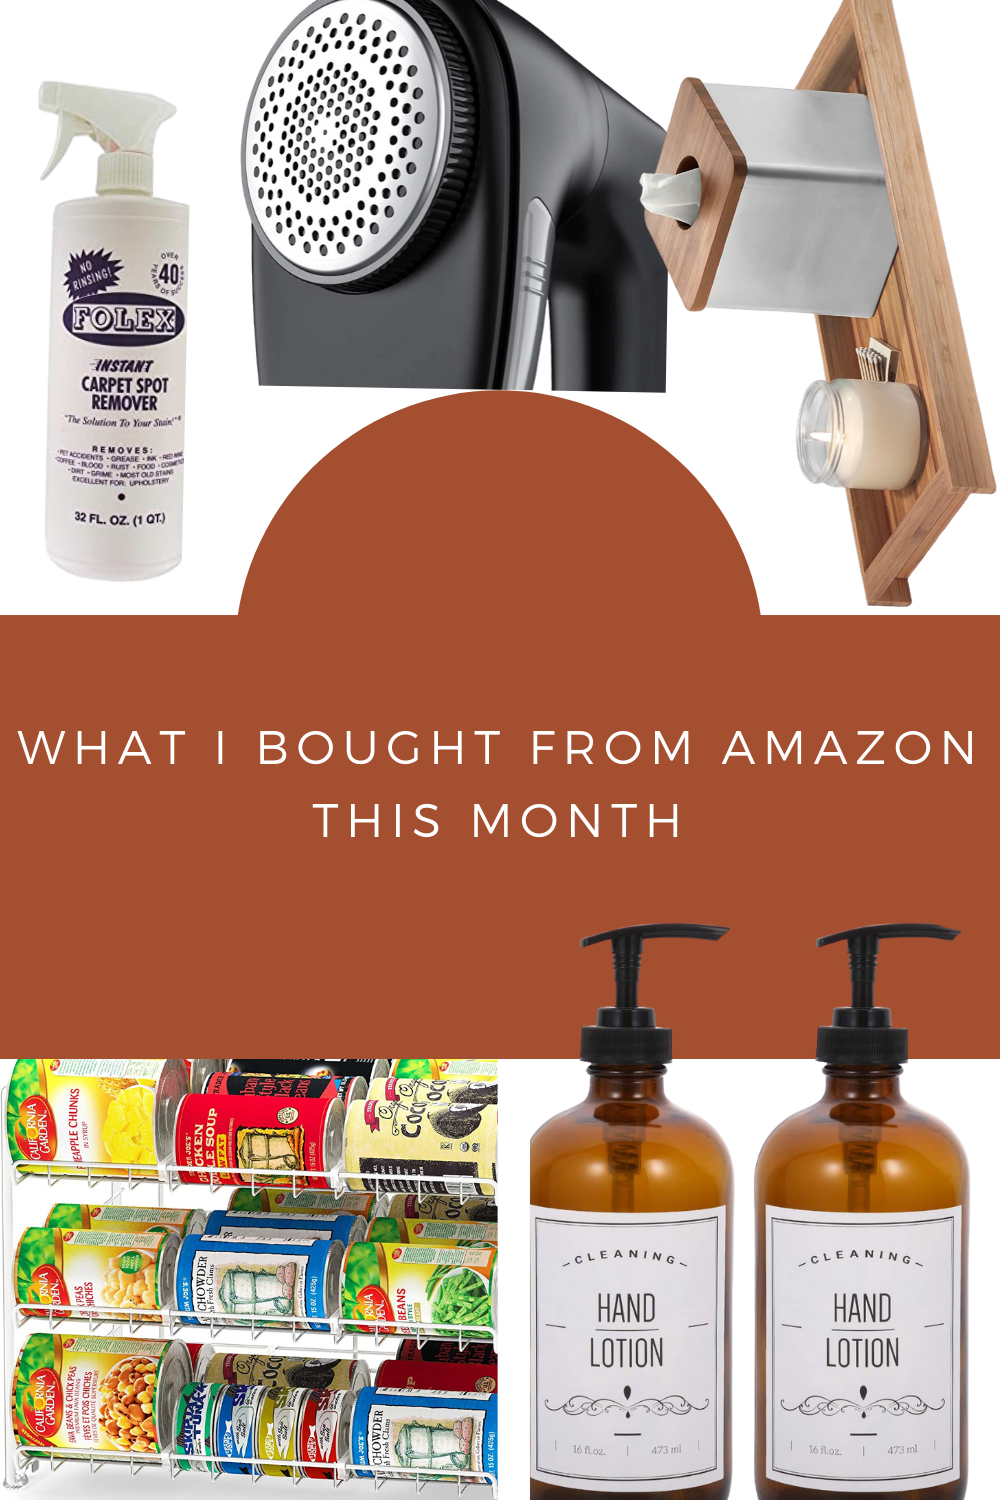 What I bought from Amazon this month